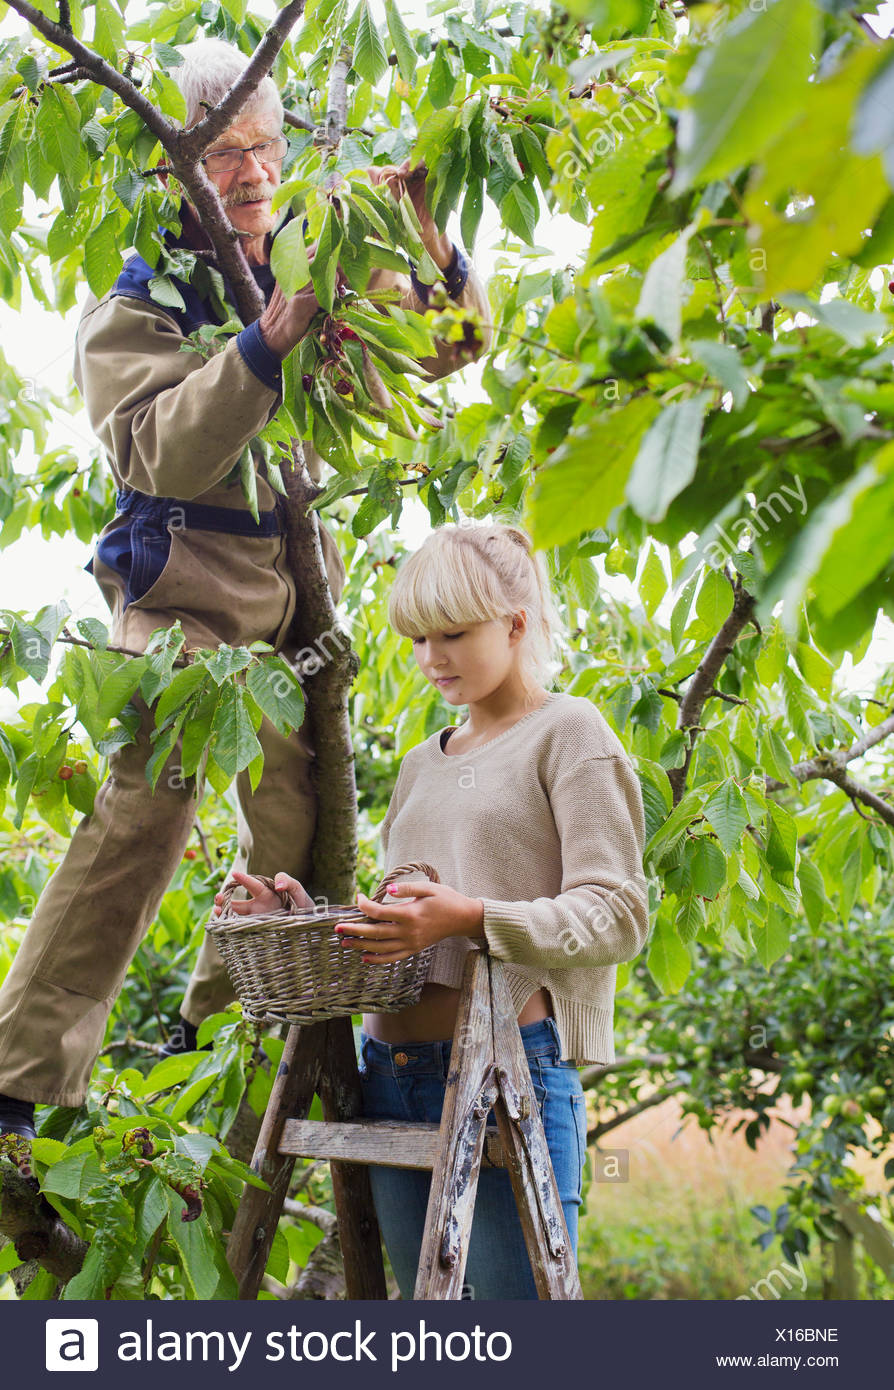 Grandfather and granddaughter harvesting in orchard - Stock Image